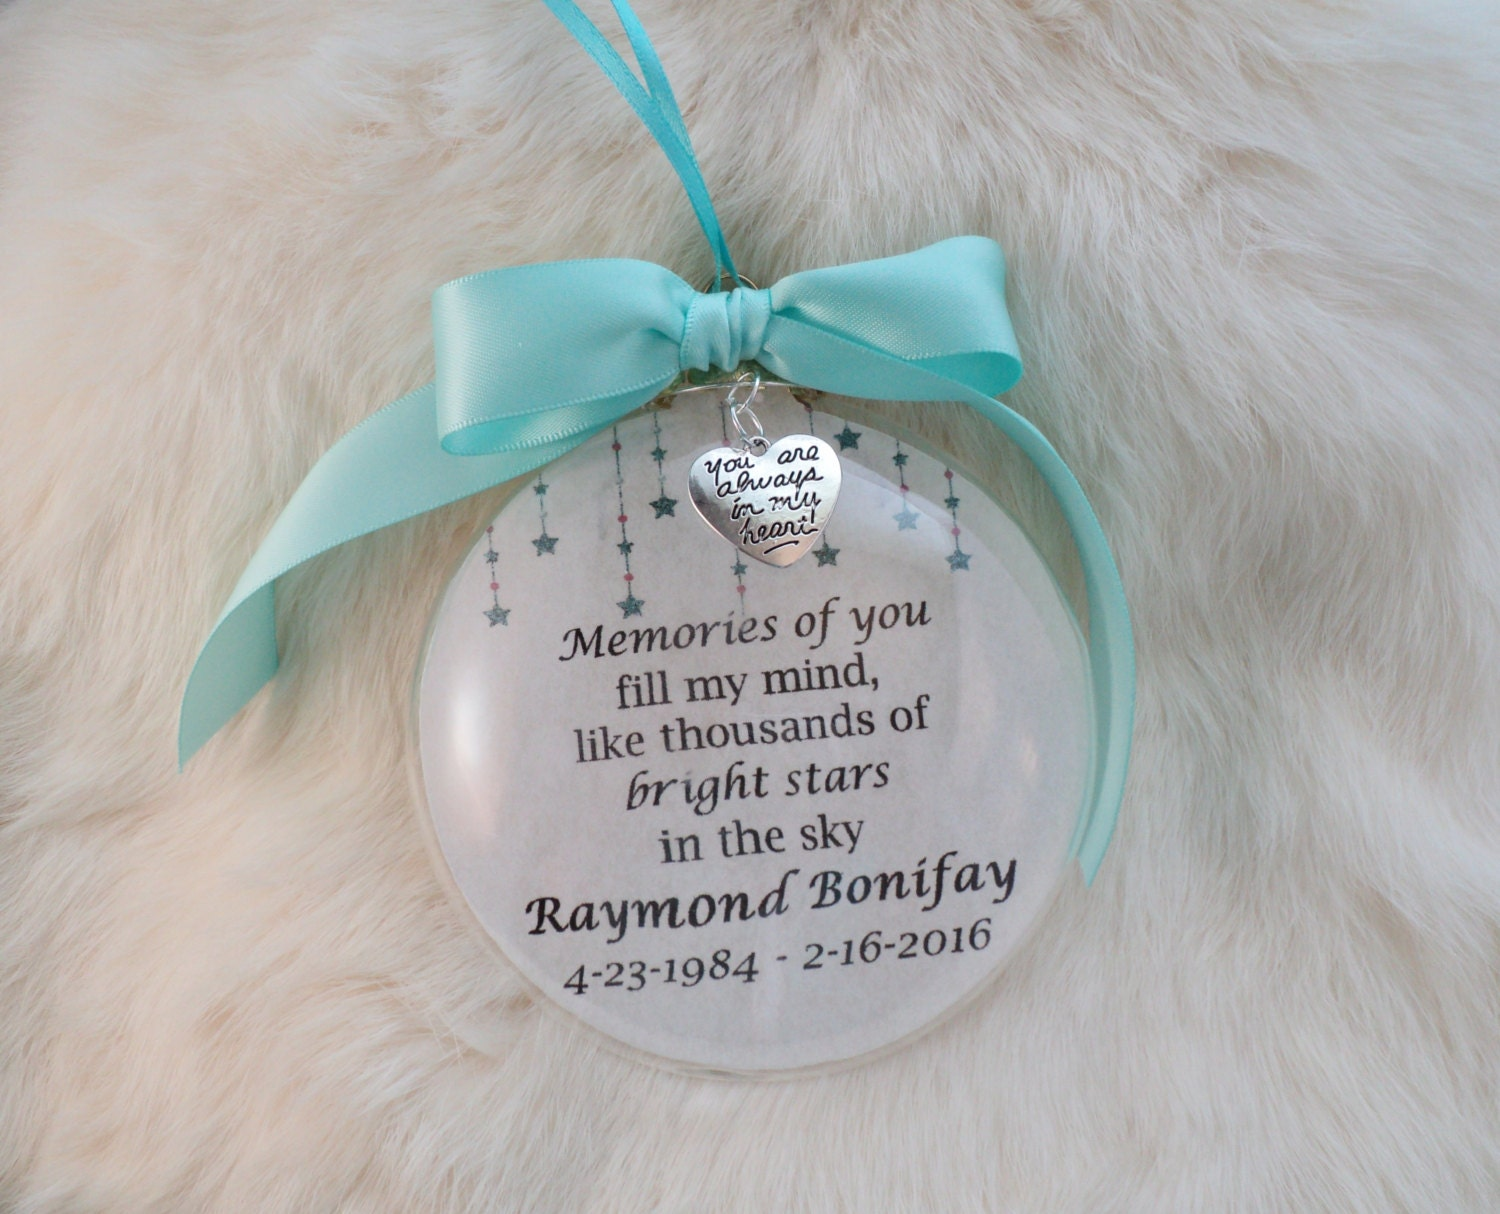 Memories Of A Loved One Quotes In Memory Ornament Memories Of You Fill My Mind Mother